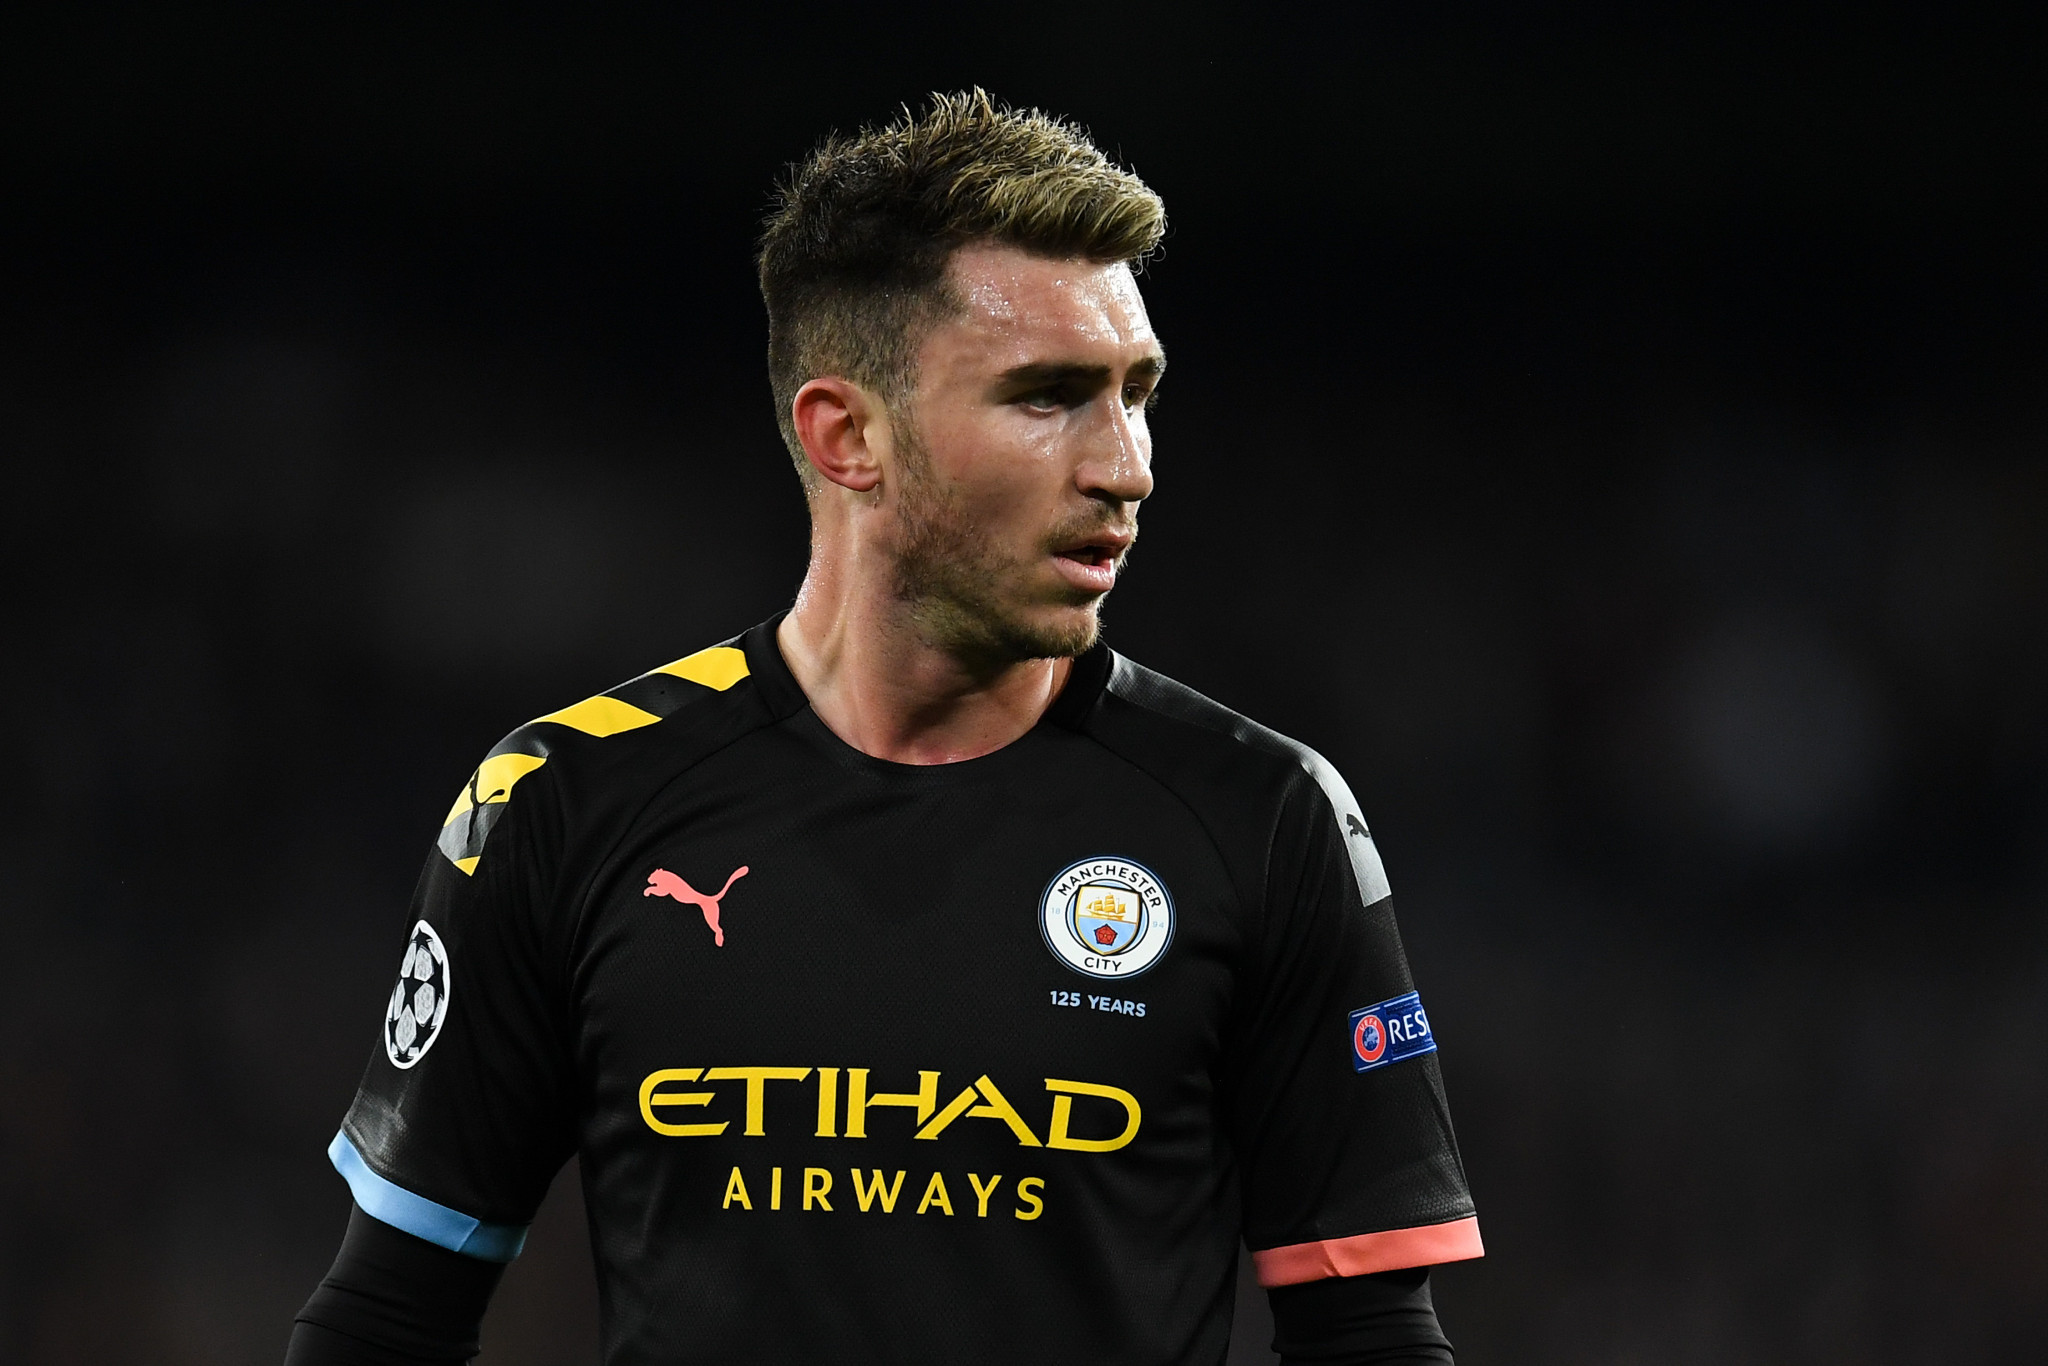 French footballer Laporte returns outfit of deceased Olympic boxer to family